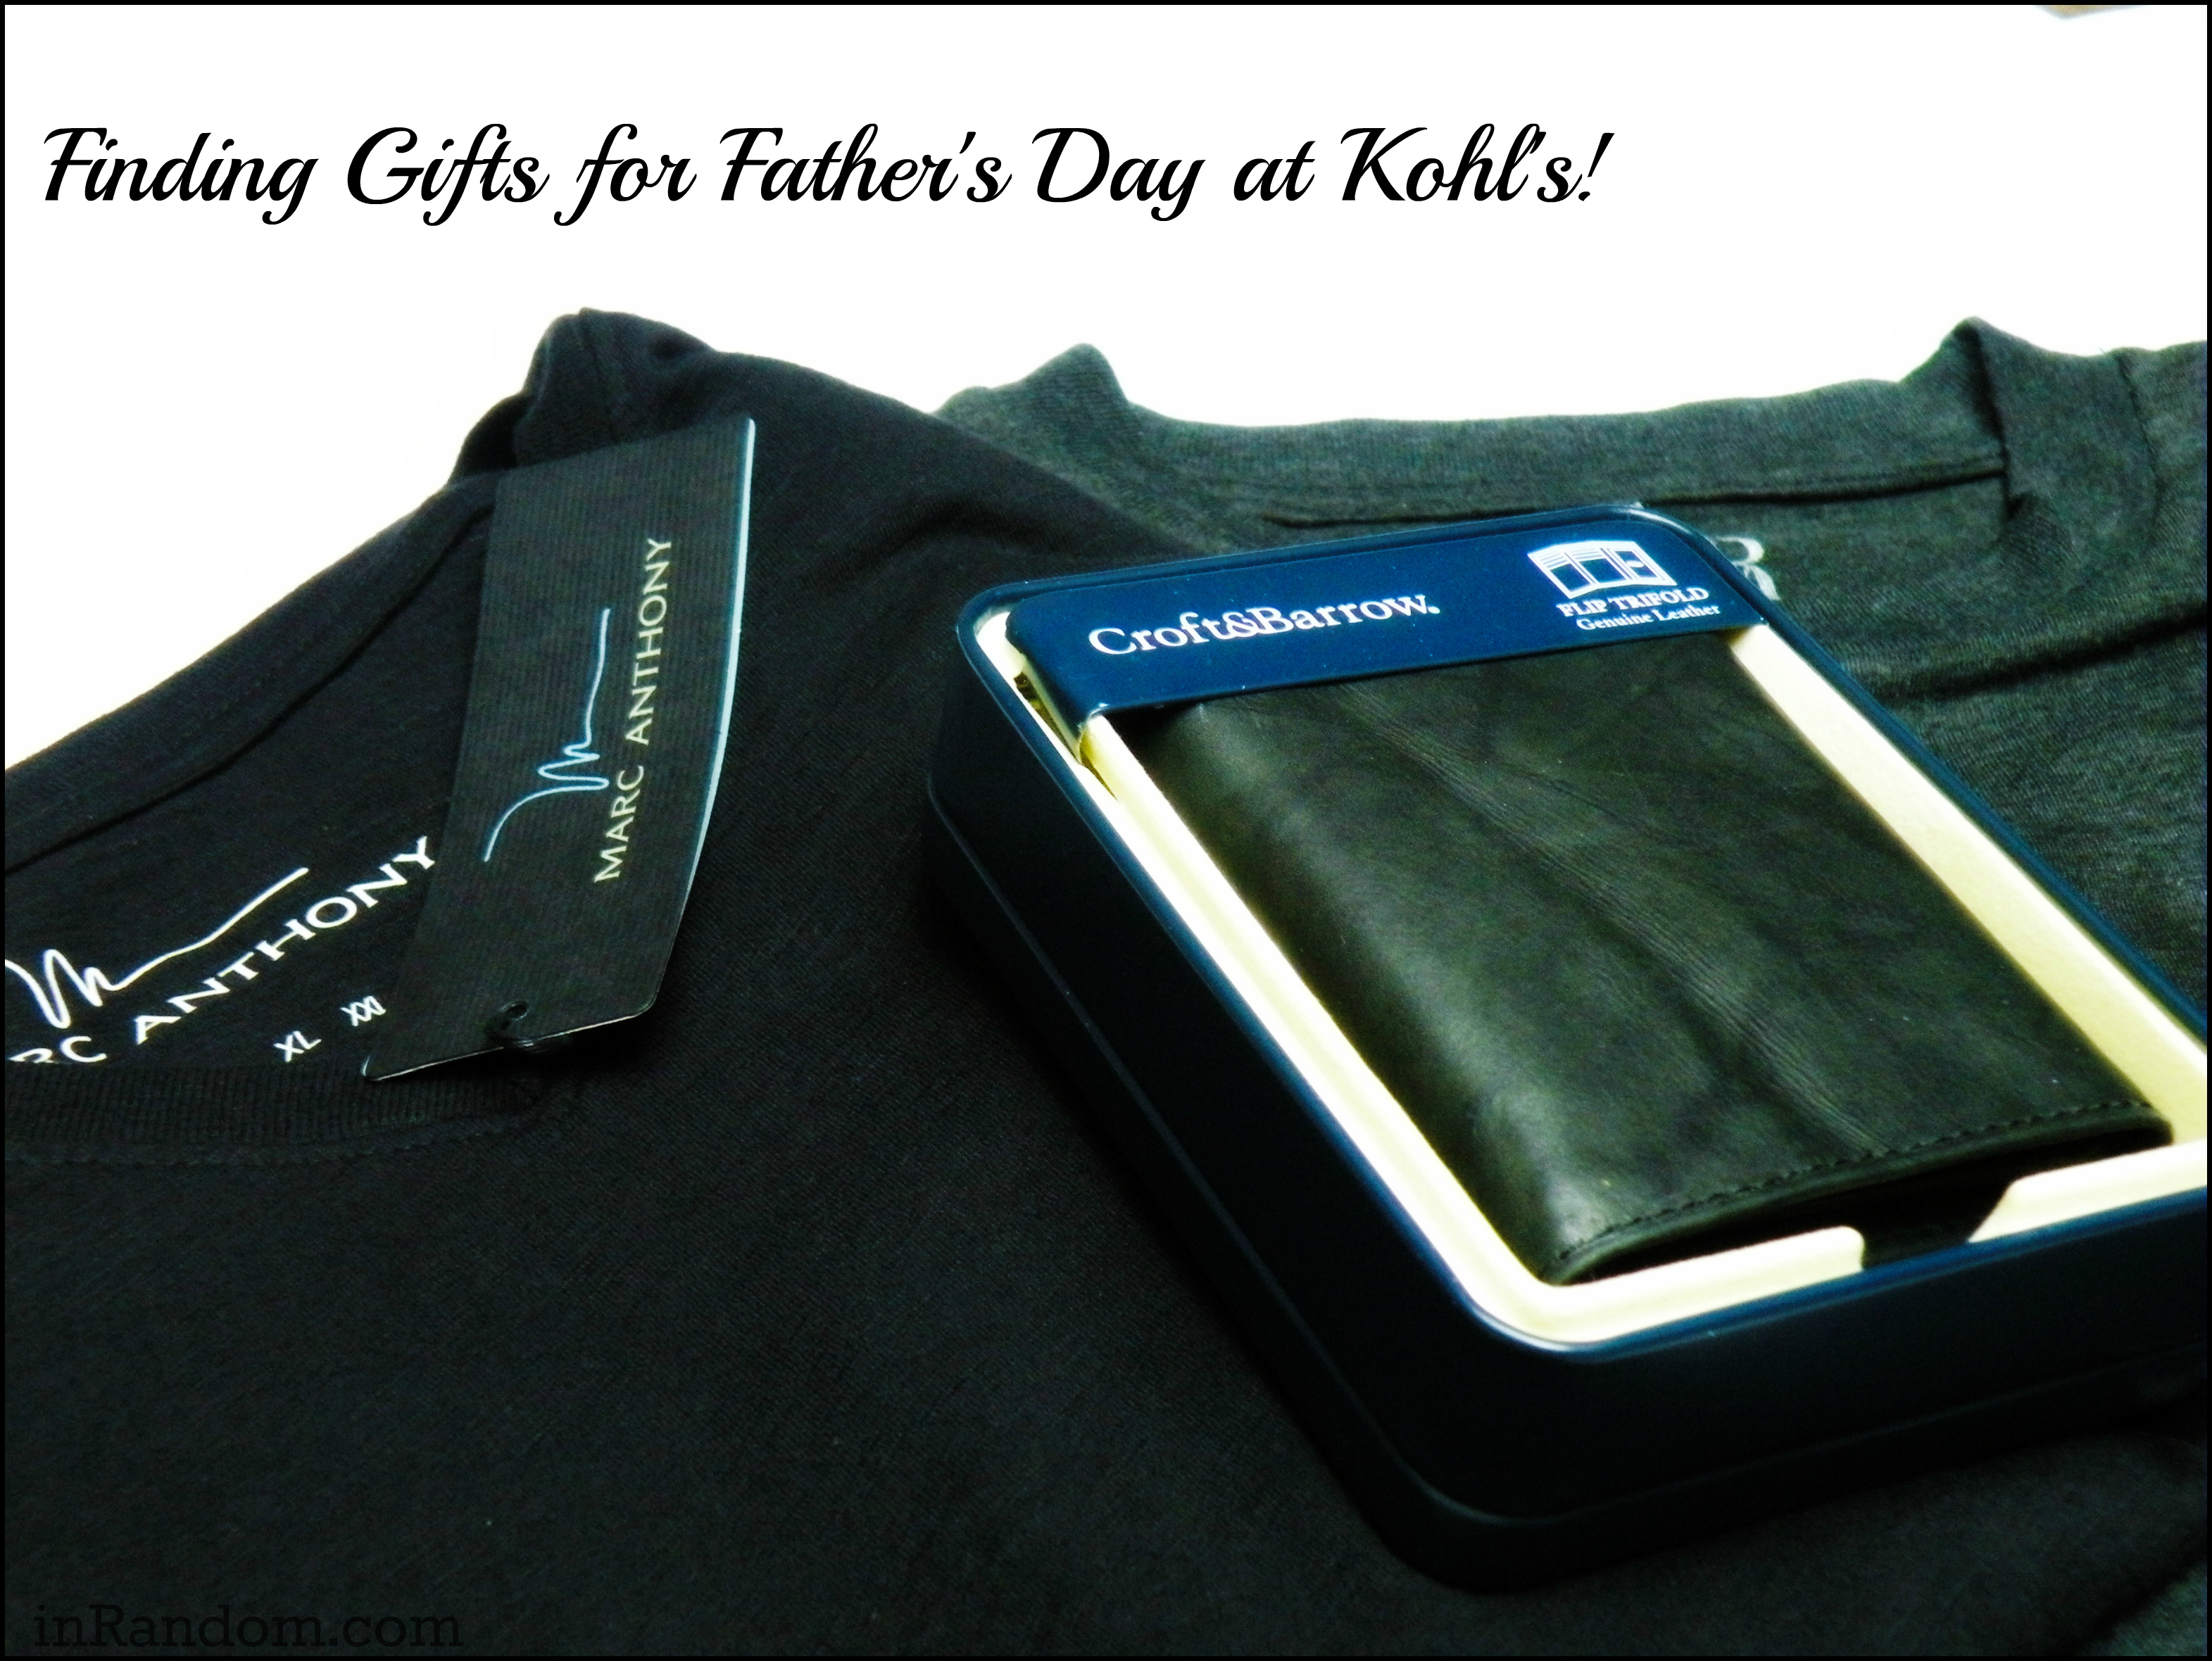 gifts for father's day at kohl's